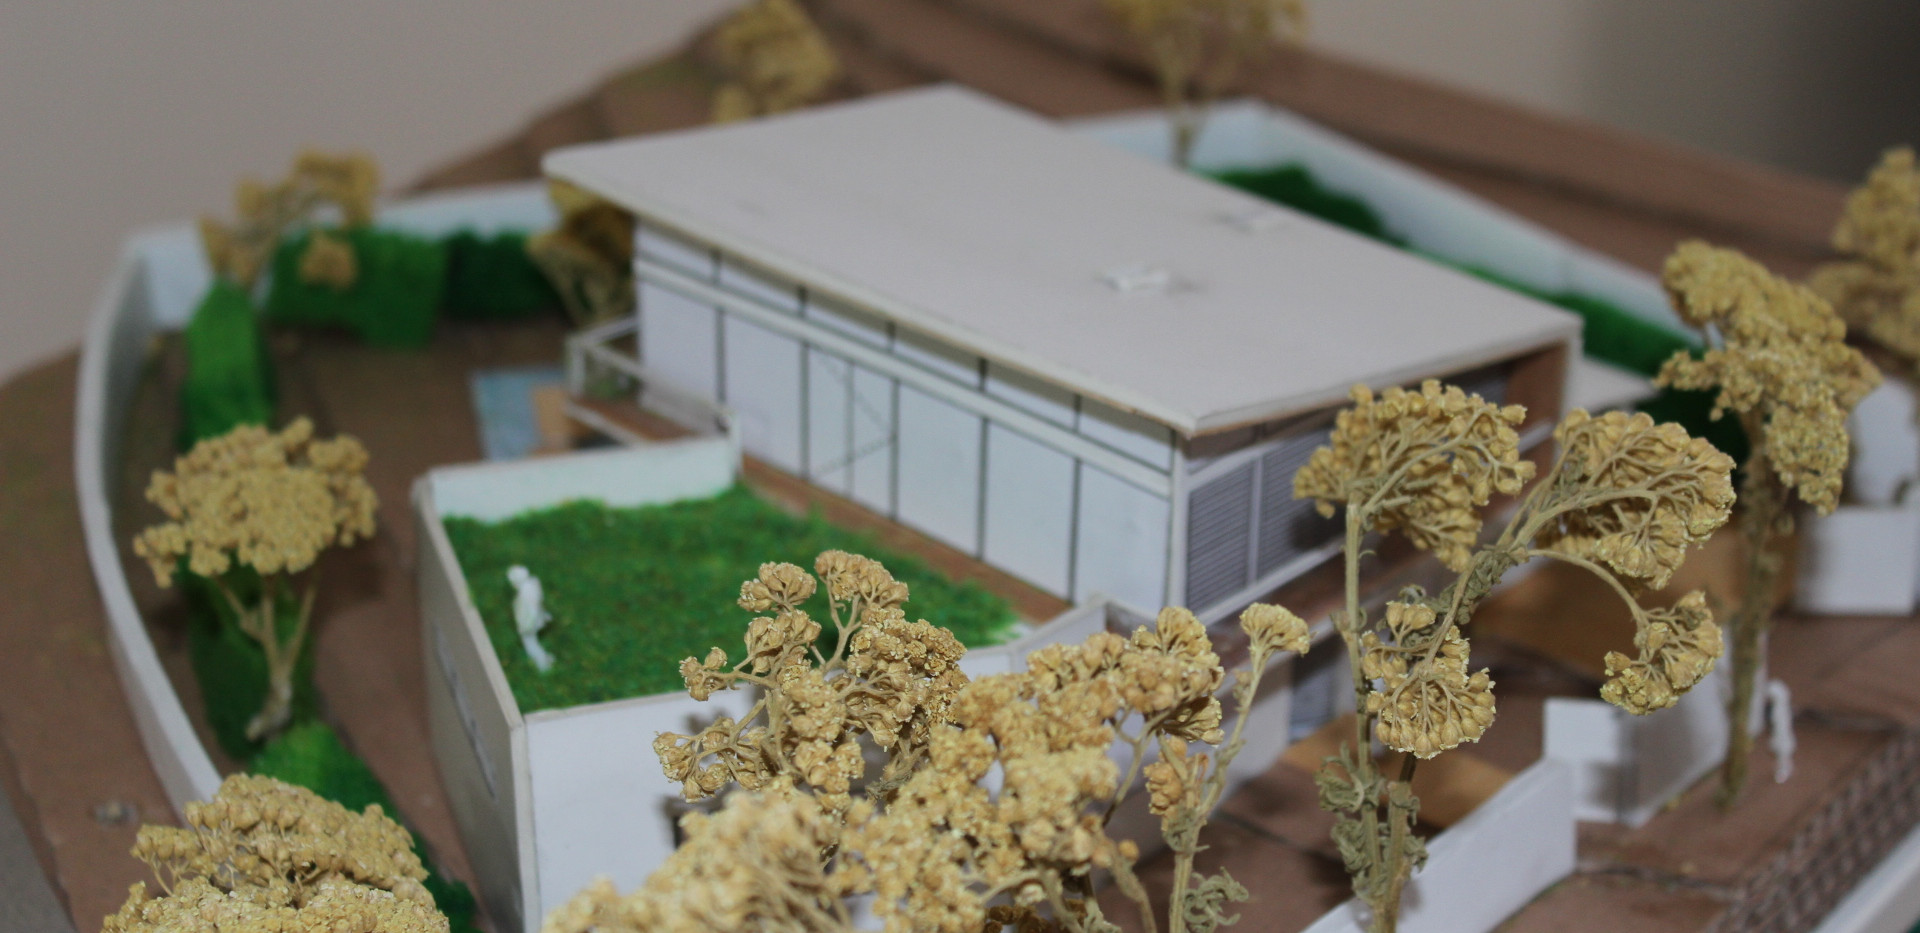 Picture of the model, Green terrace